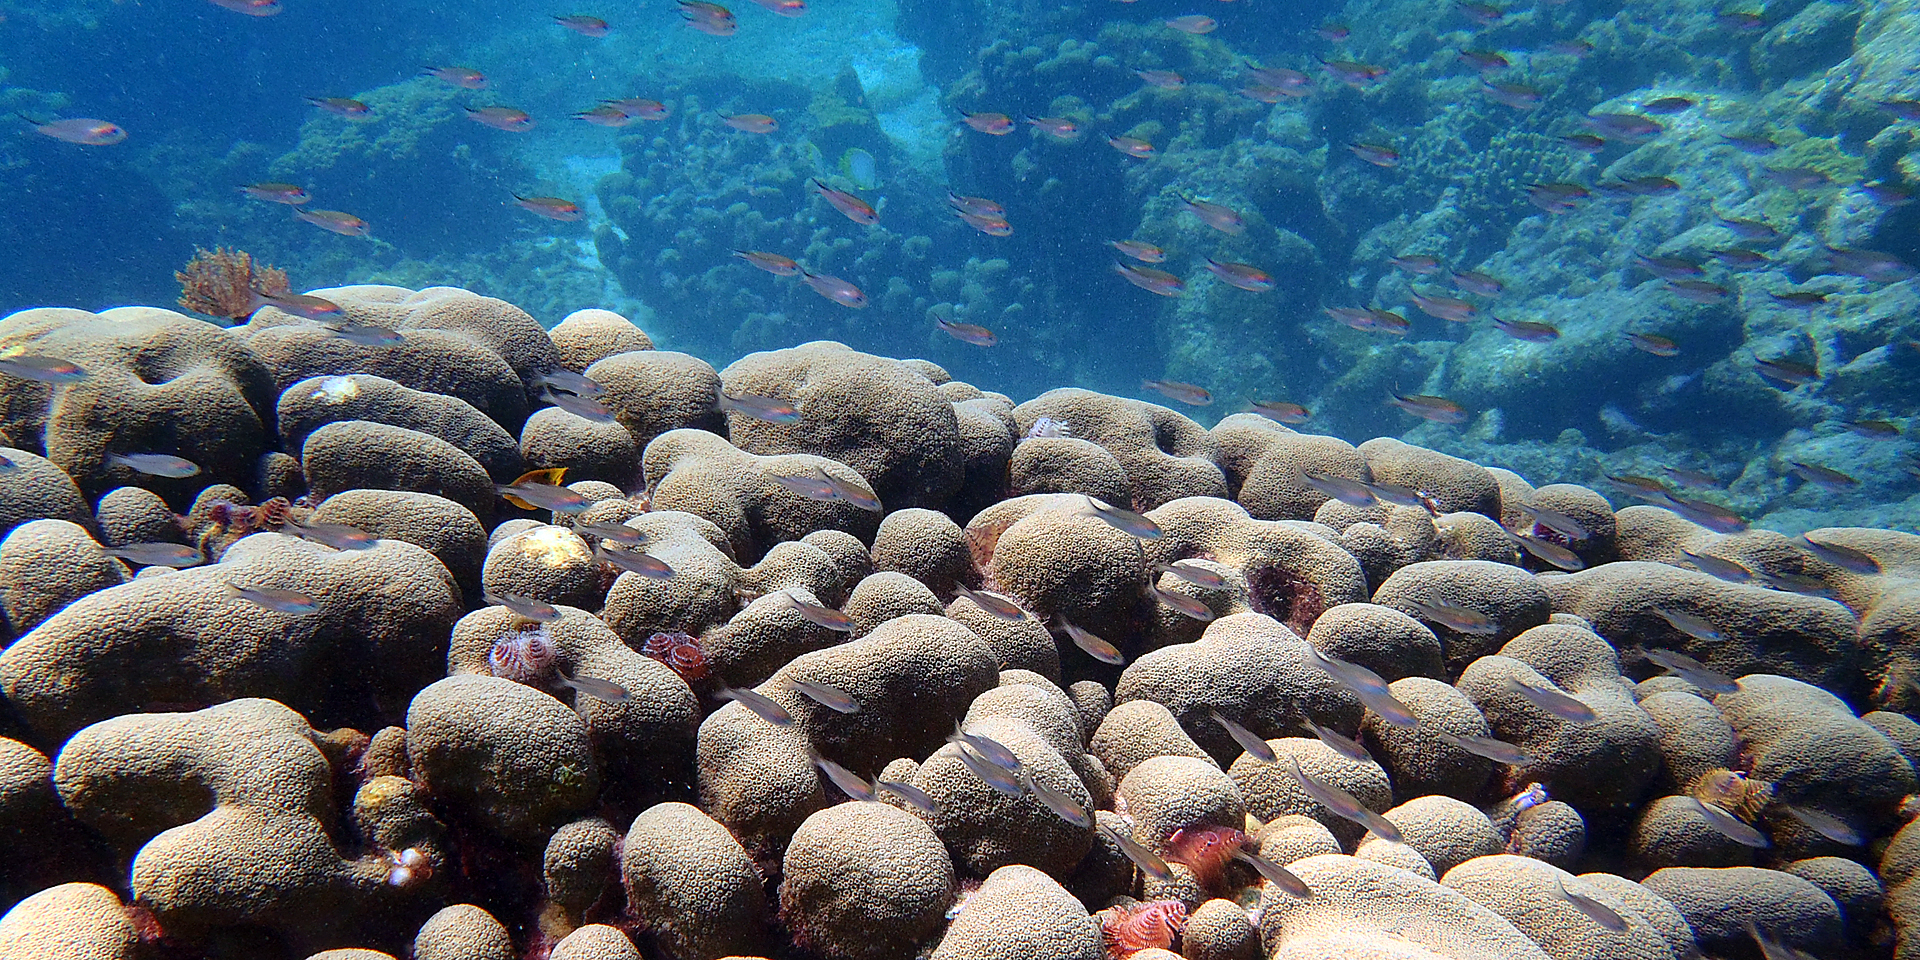 Agrra Partnerships Work On Coral Reef Conservation